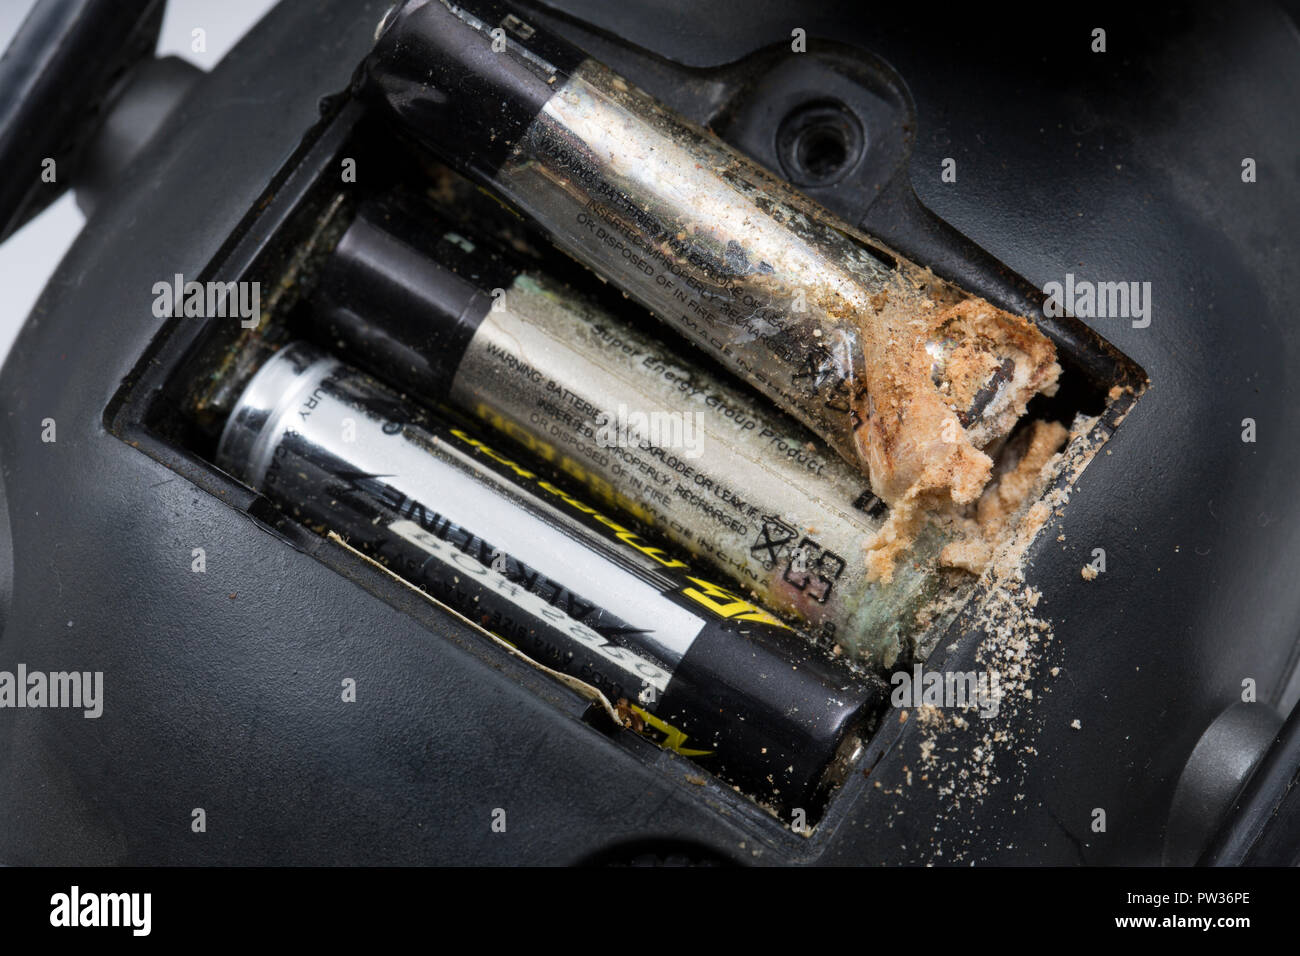 An alkaline AAA battery that has been left for several years in a pair of electronic hearing defenders and leaked from the negative end of the battery - Stock Image